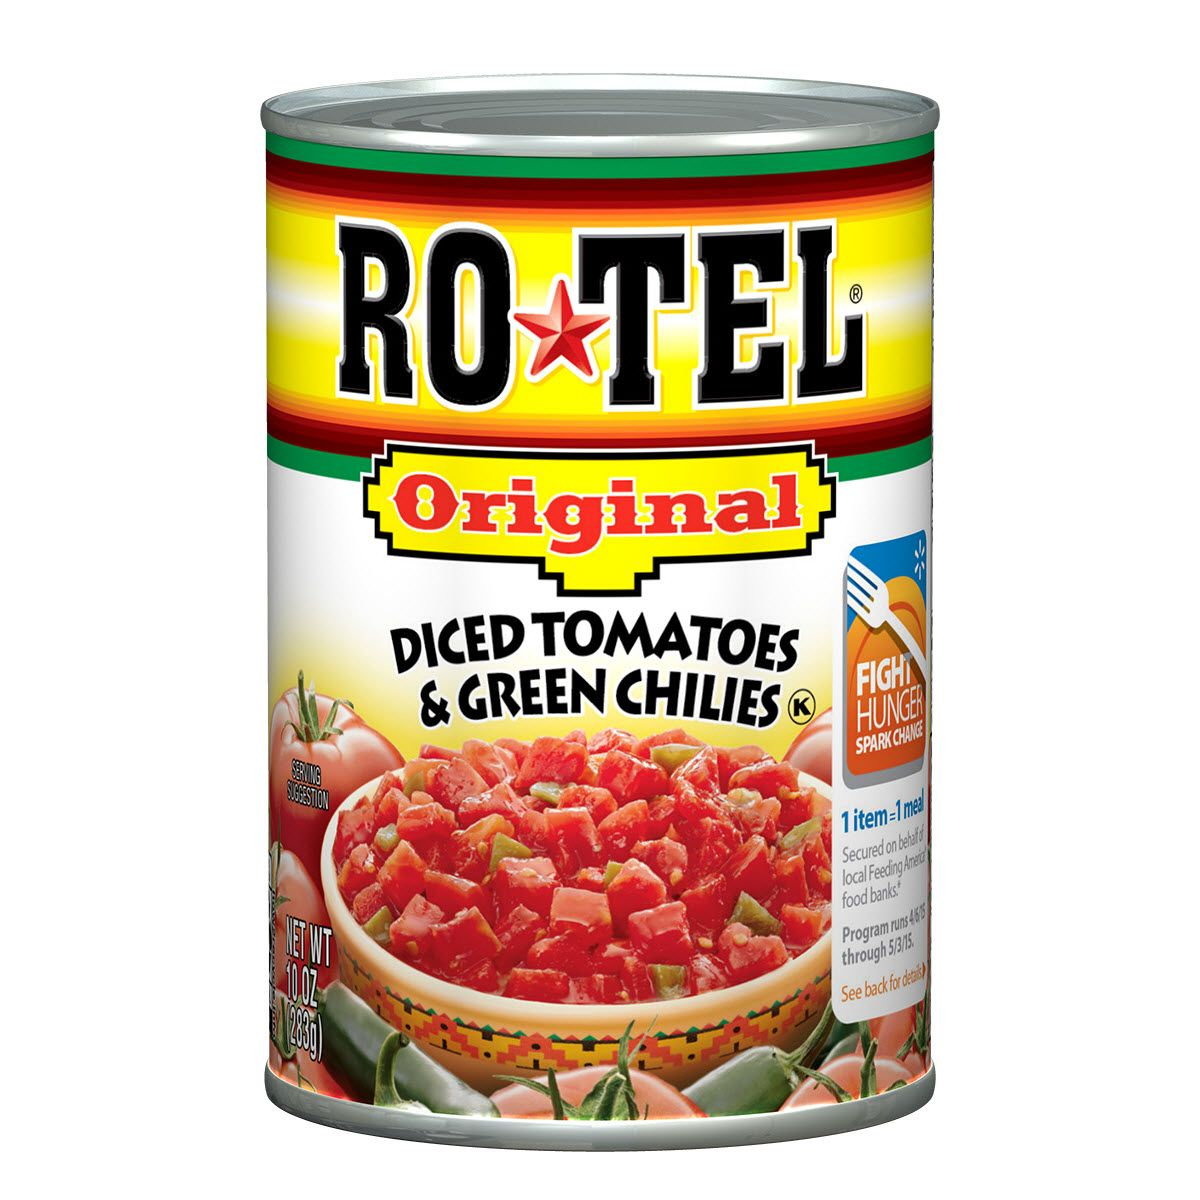 Rotel Diced Tomatoes - 10oz